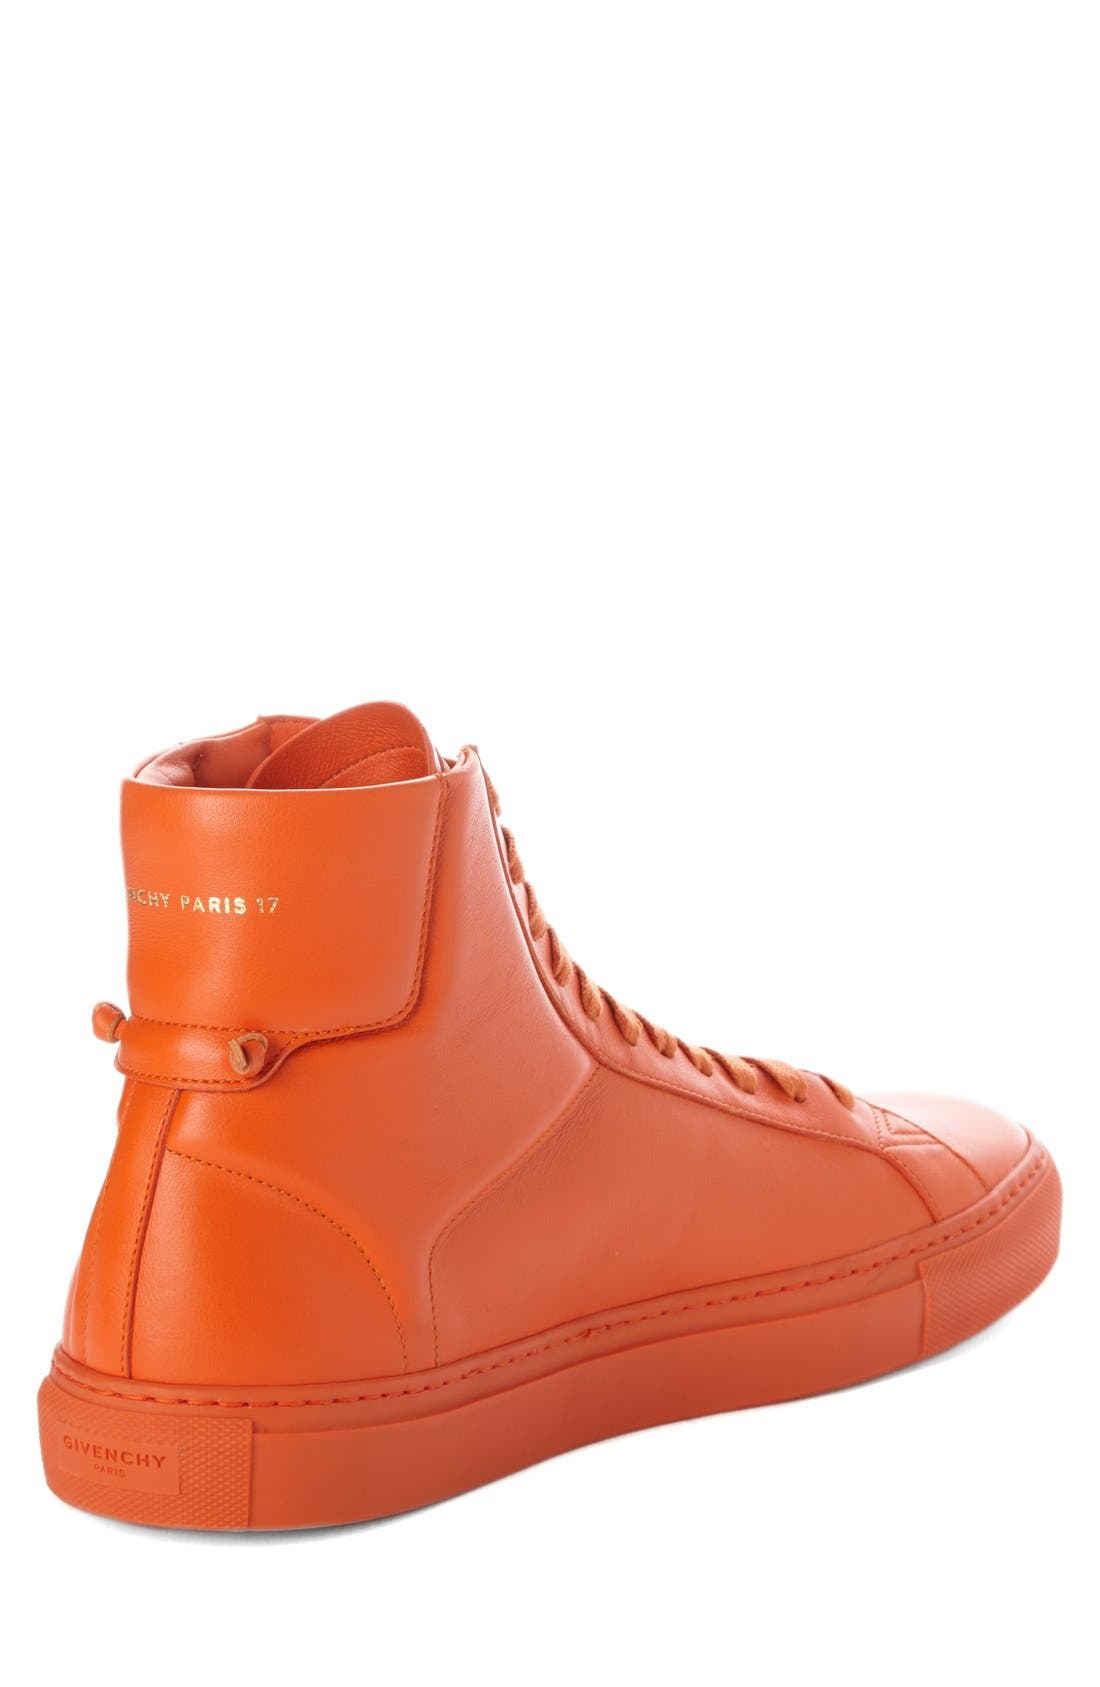 'Urban Knots' High Top Sneaker,                             Alternate thumbnail 3, color,                             Orange Leather